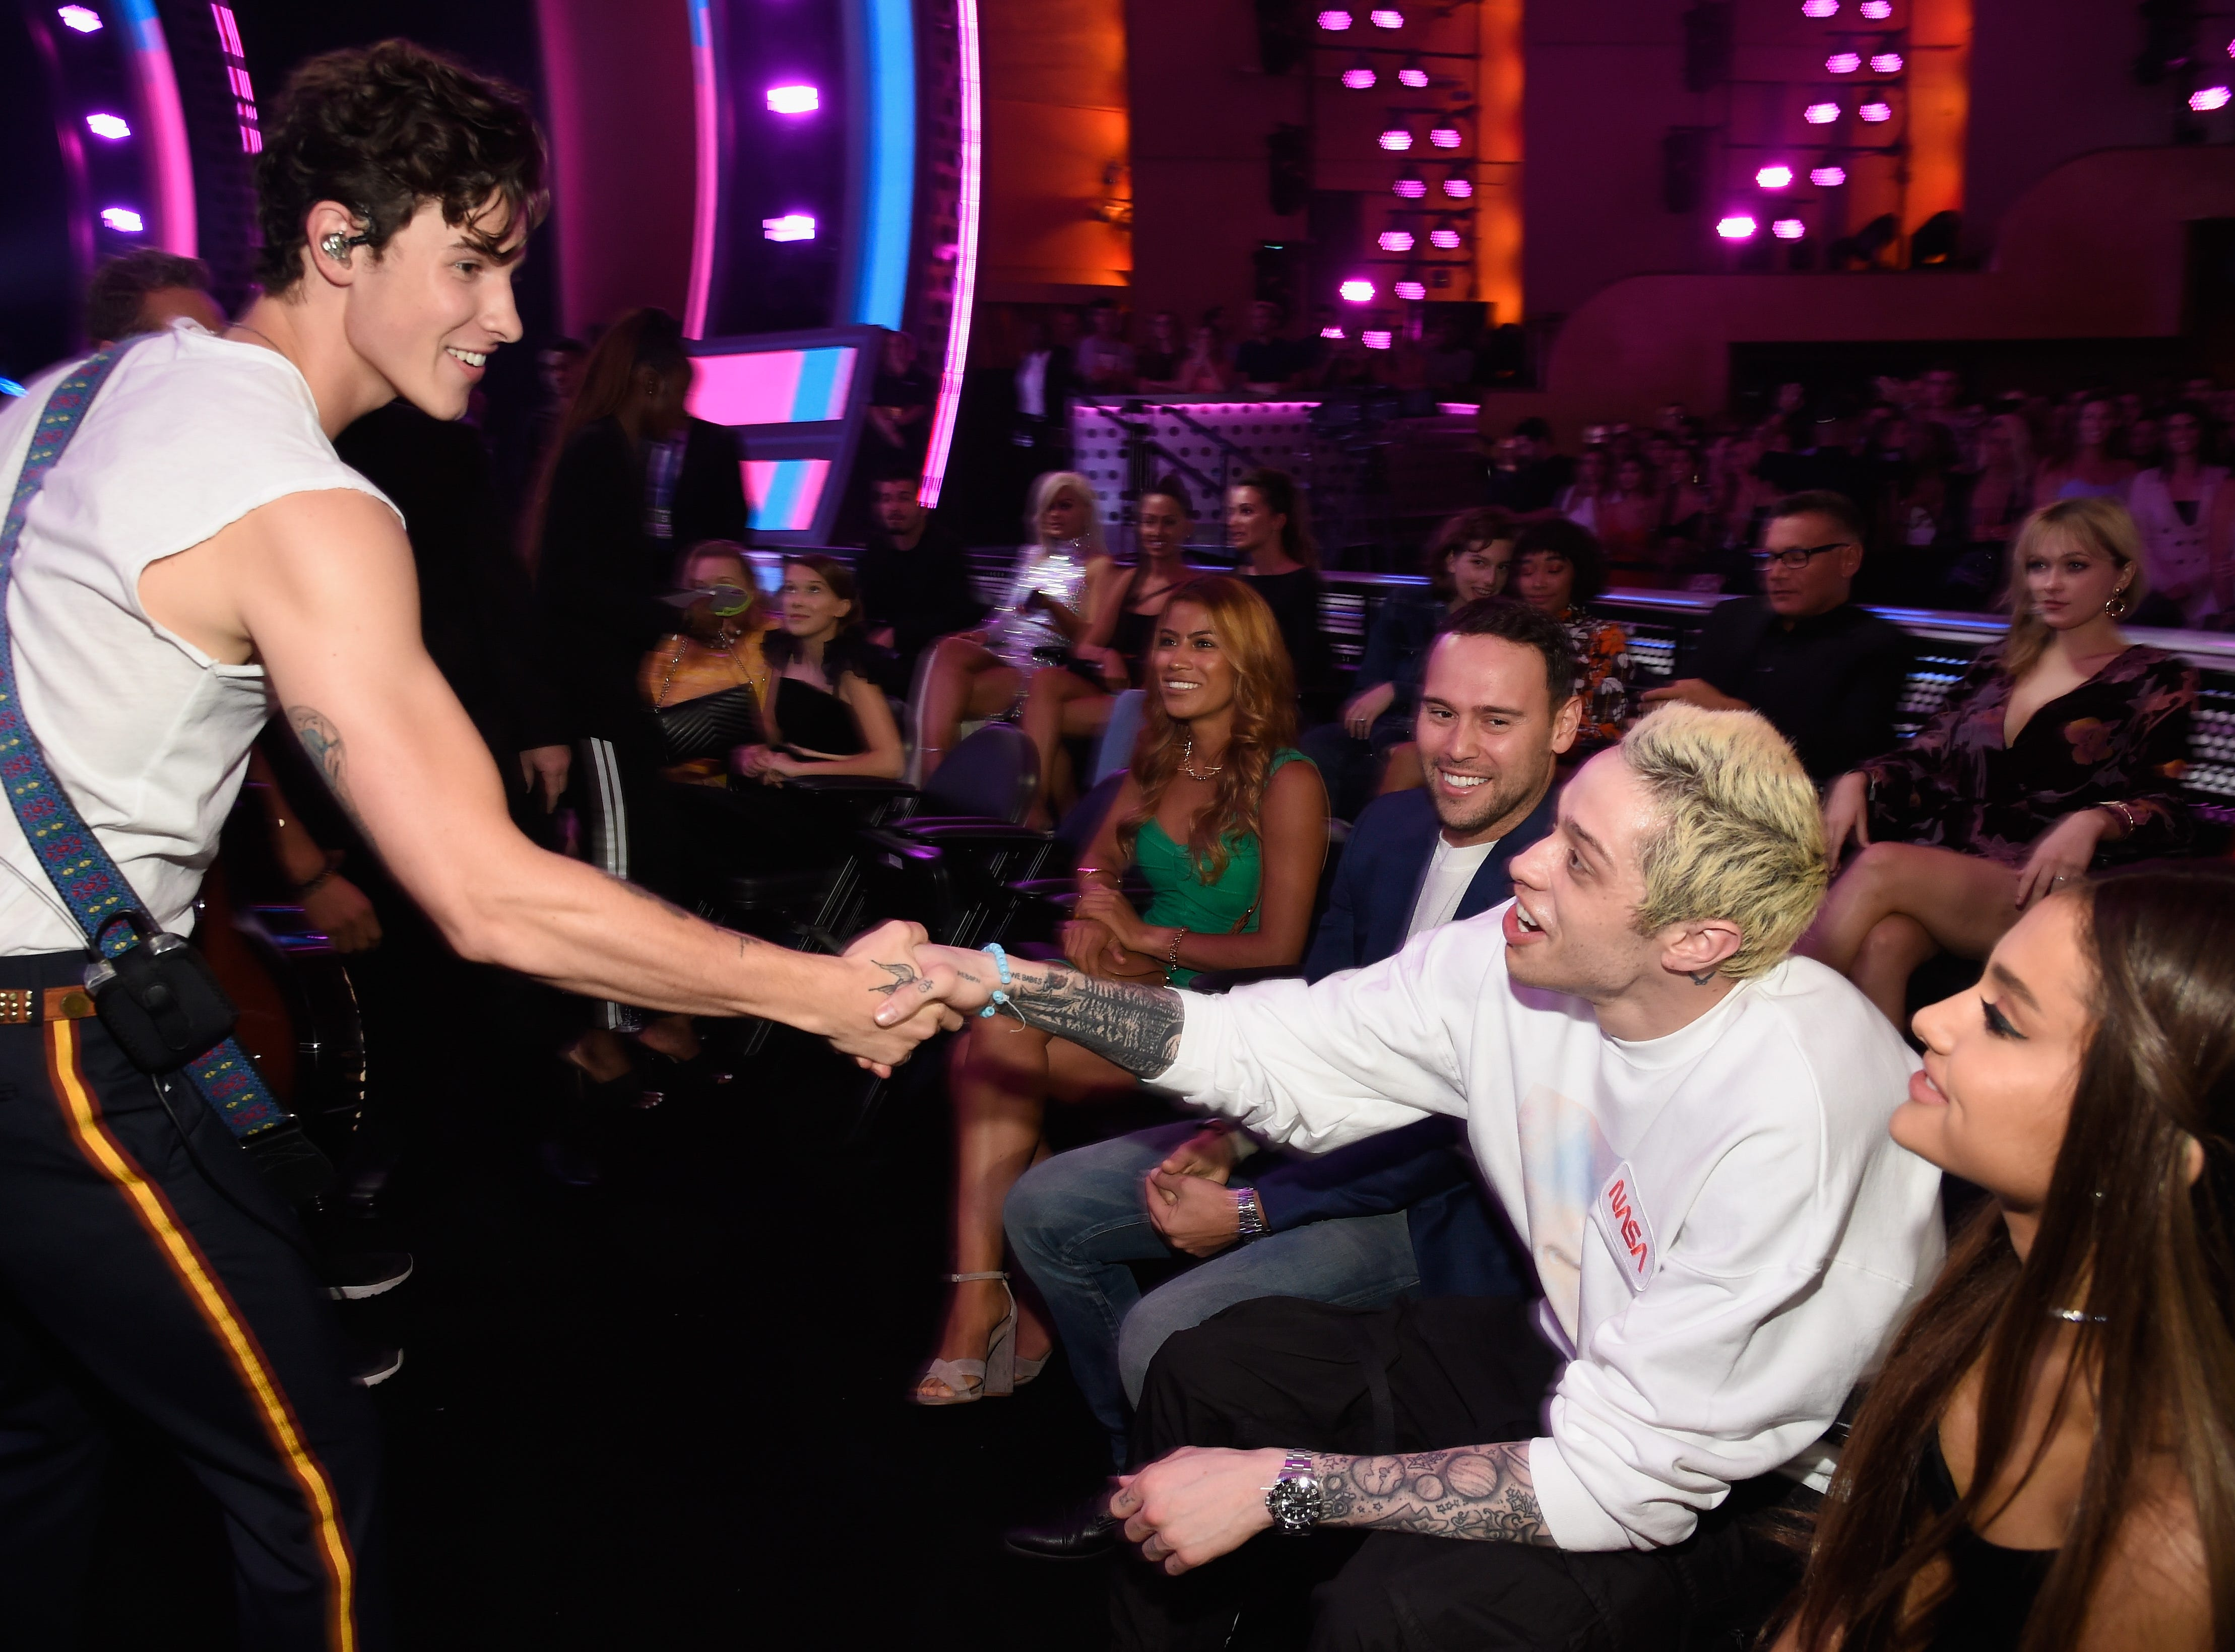 NEW YORK, NY - AUGUST 20: Shawn Mendes performs with Pete Davidson and Ariana Grande in the a during the 2018 MTV Video Music Awards at Radio City Music Hall on August 20, 2018 in New York City.  (Photo by Kevin Mazur/WireImage) ORG XMIT: 775211585 ORIG FILE ID: 1020327378